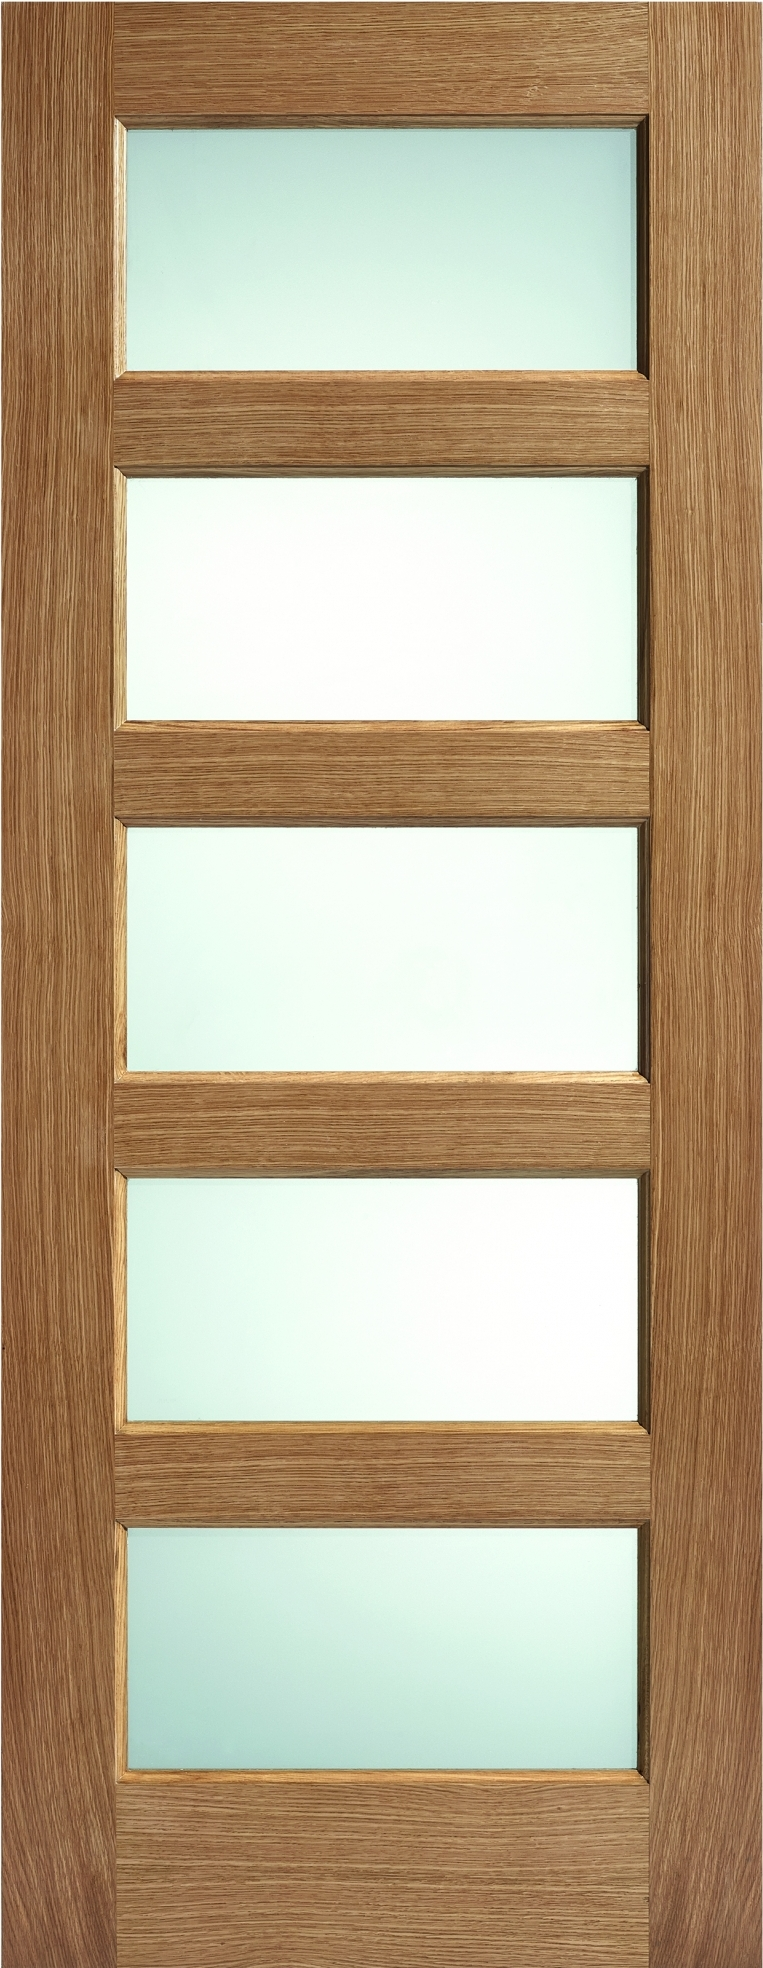 Oak Contemporary 5L Glazed - Frosted Prefinished